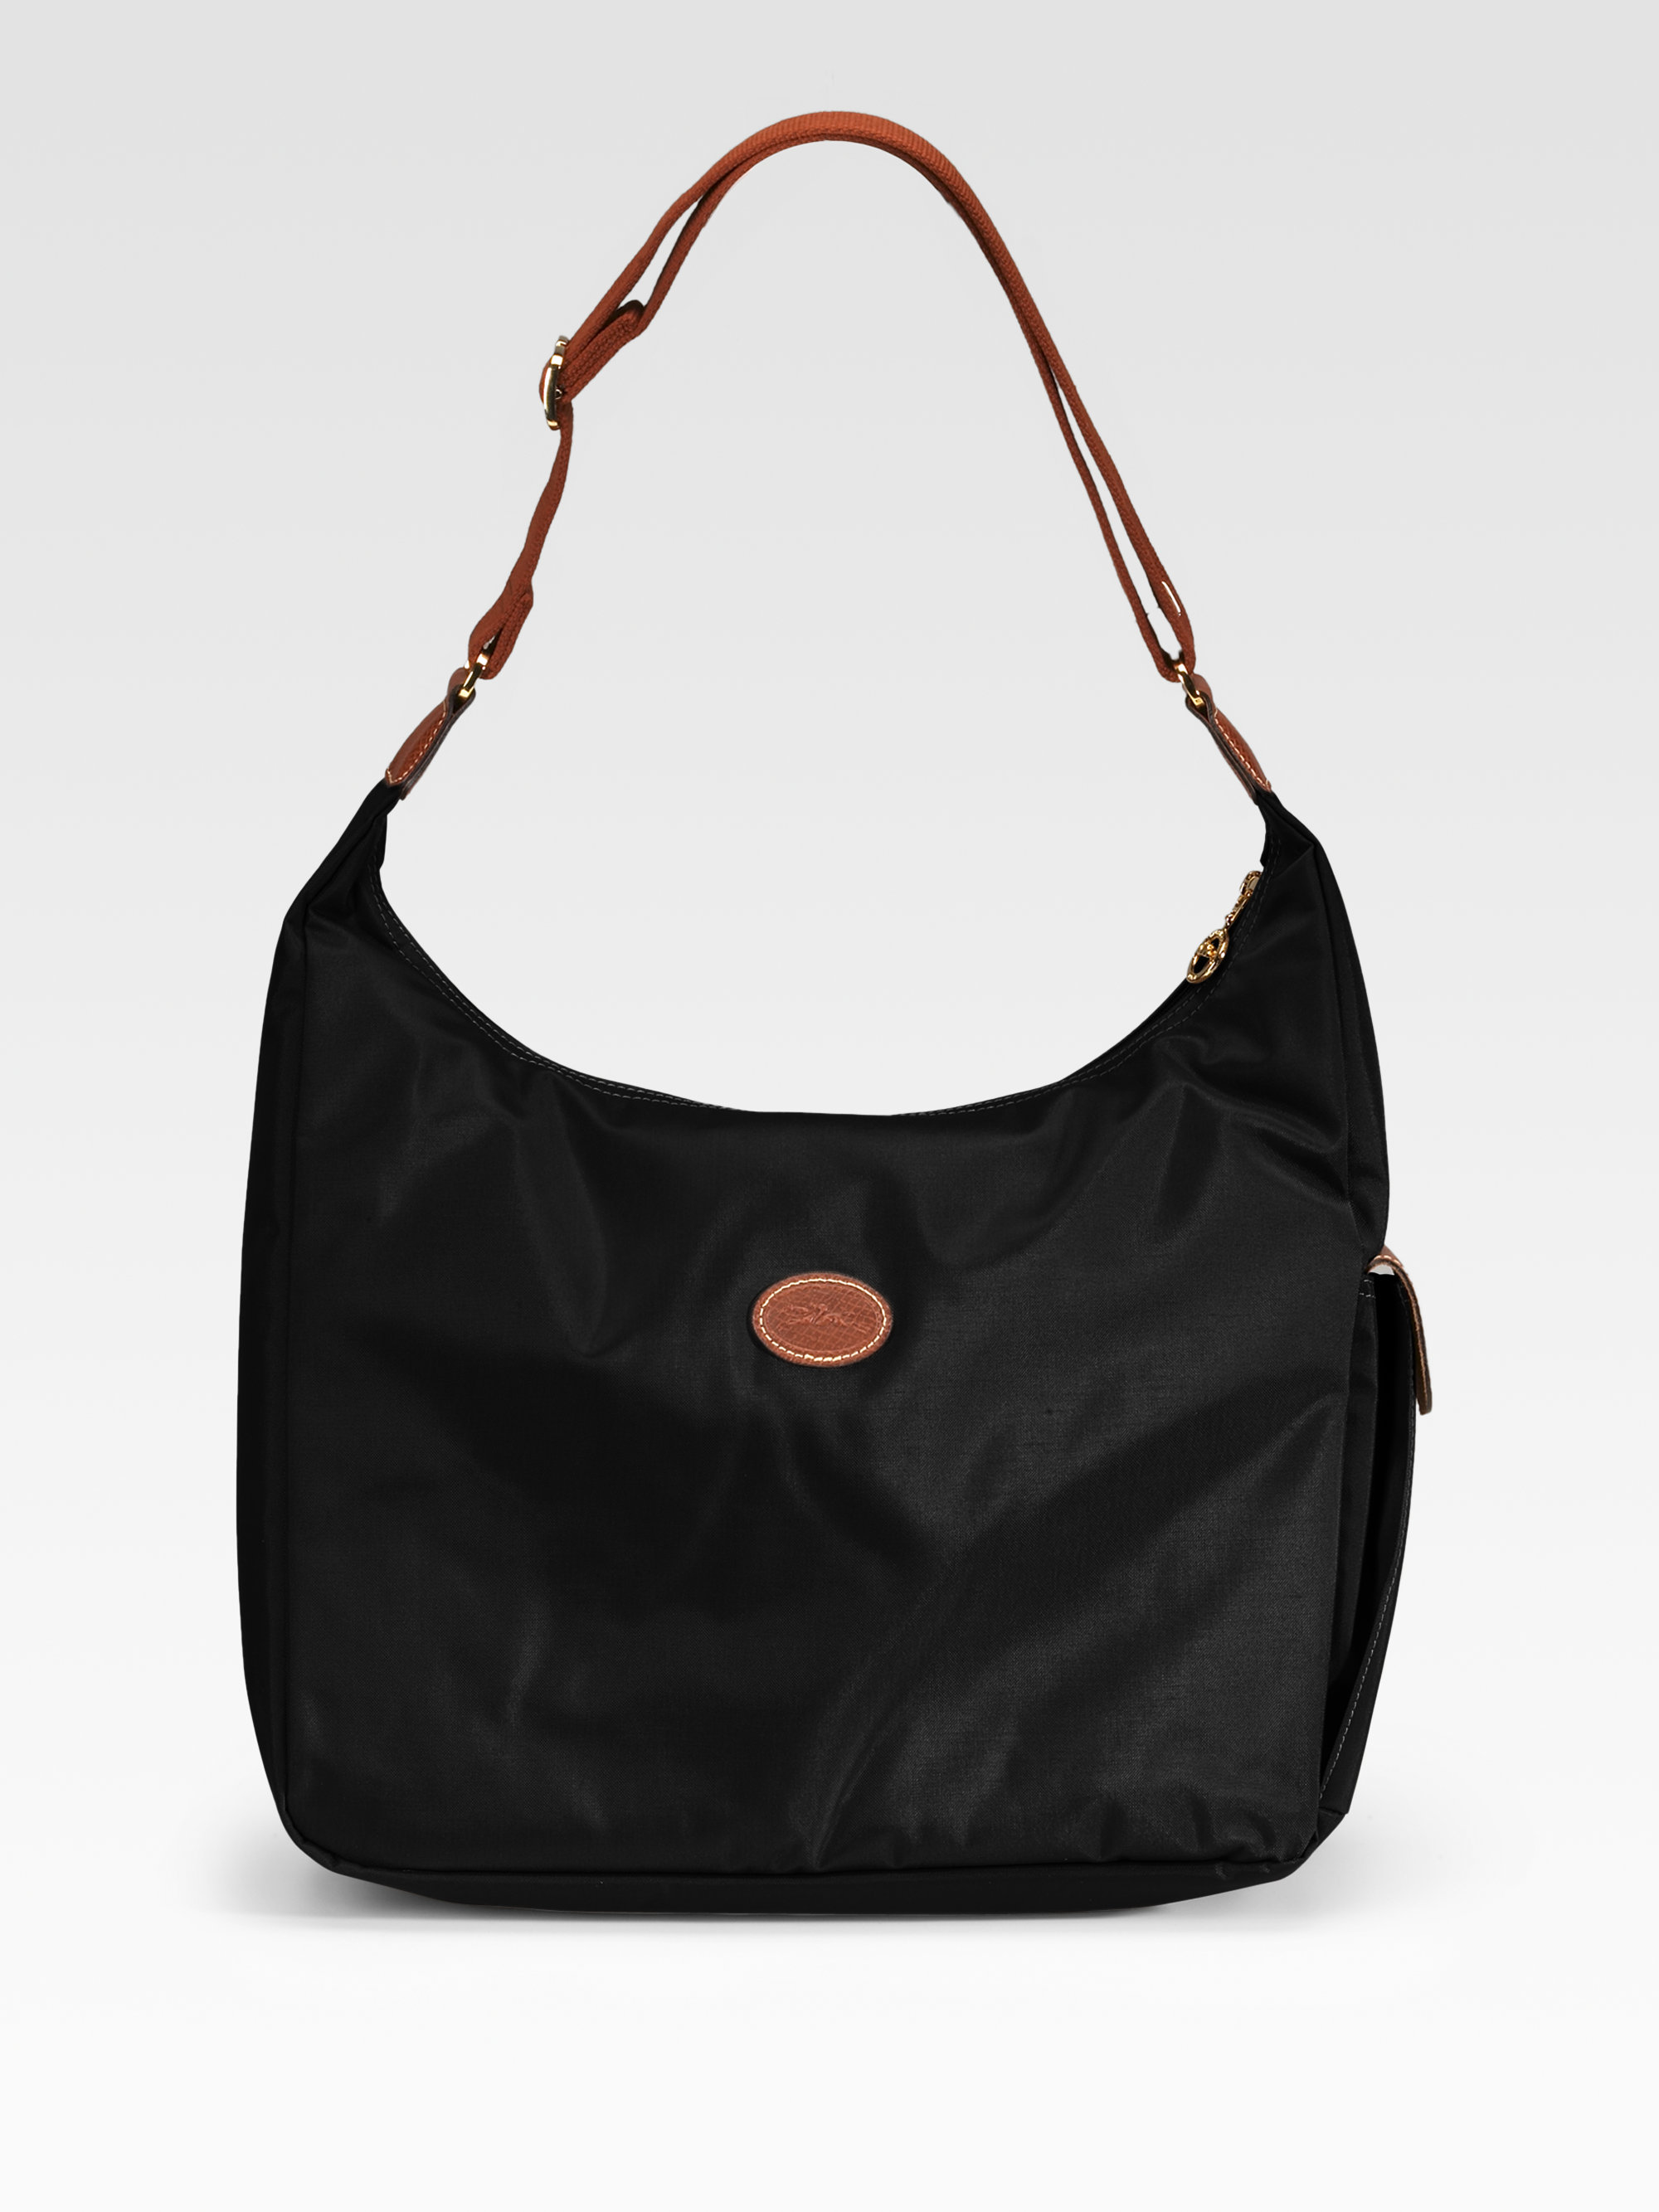 longchamp le pliage hobo bag in black lyst. Black Bedroom Furniture Sets. Home Design Ideas